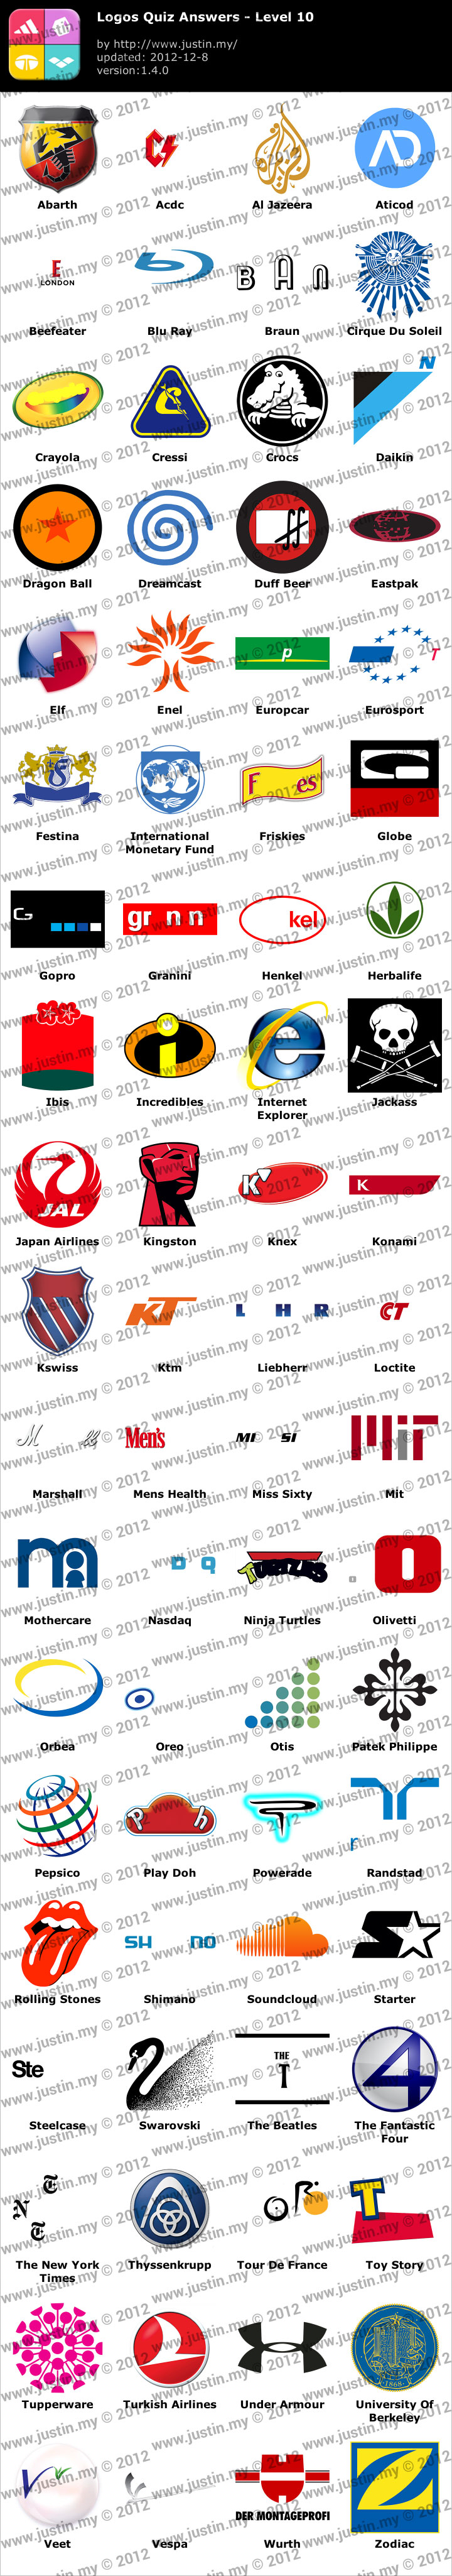 Logo Quiz Answers for iPhone, iPad, Android